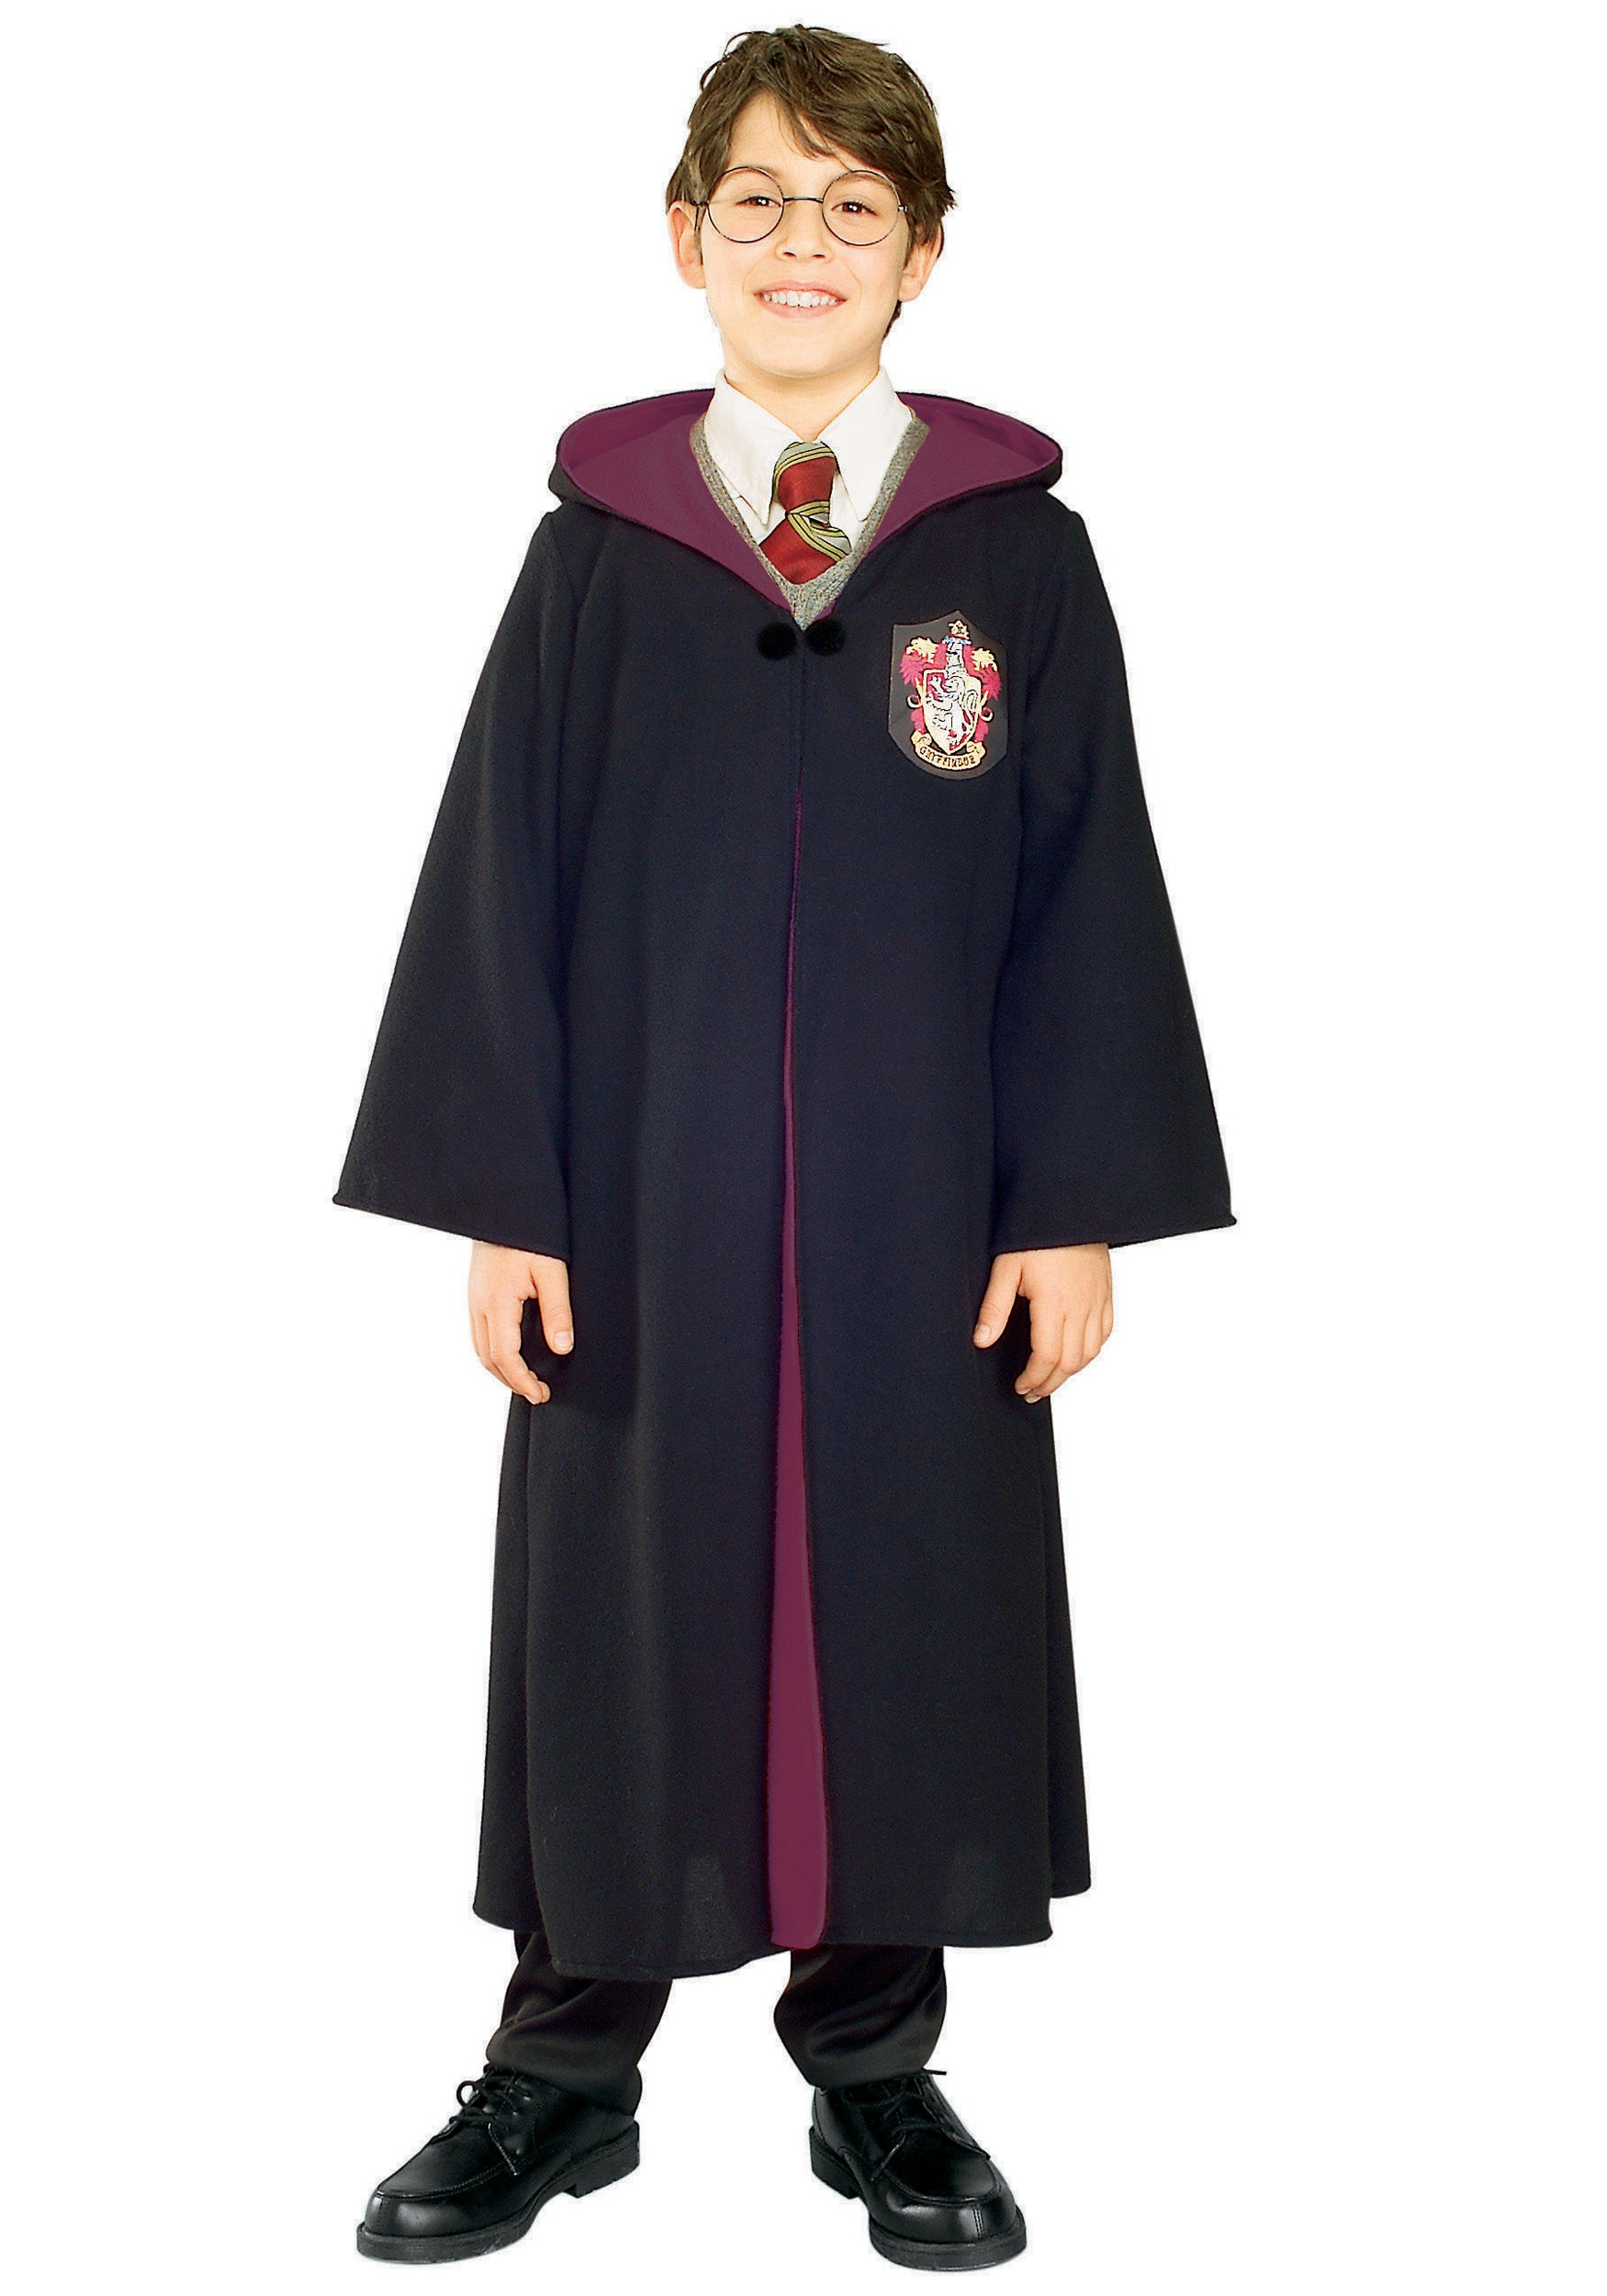 child deluxe harry potter costume halloween costume. Black Bedroom Furniture Sets. Home Design Ideas